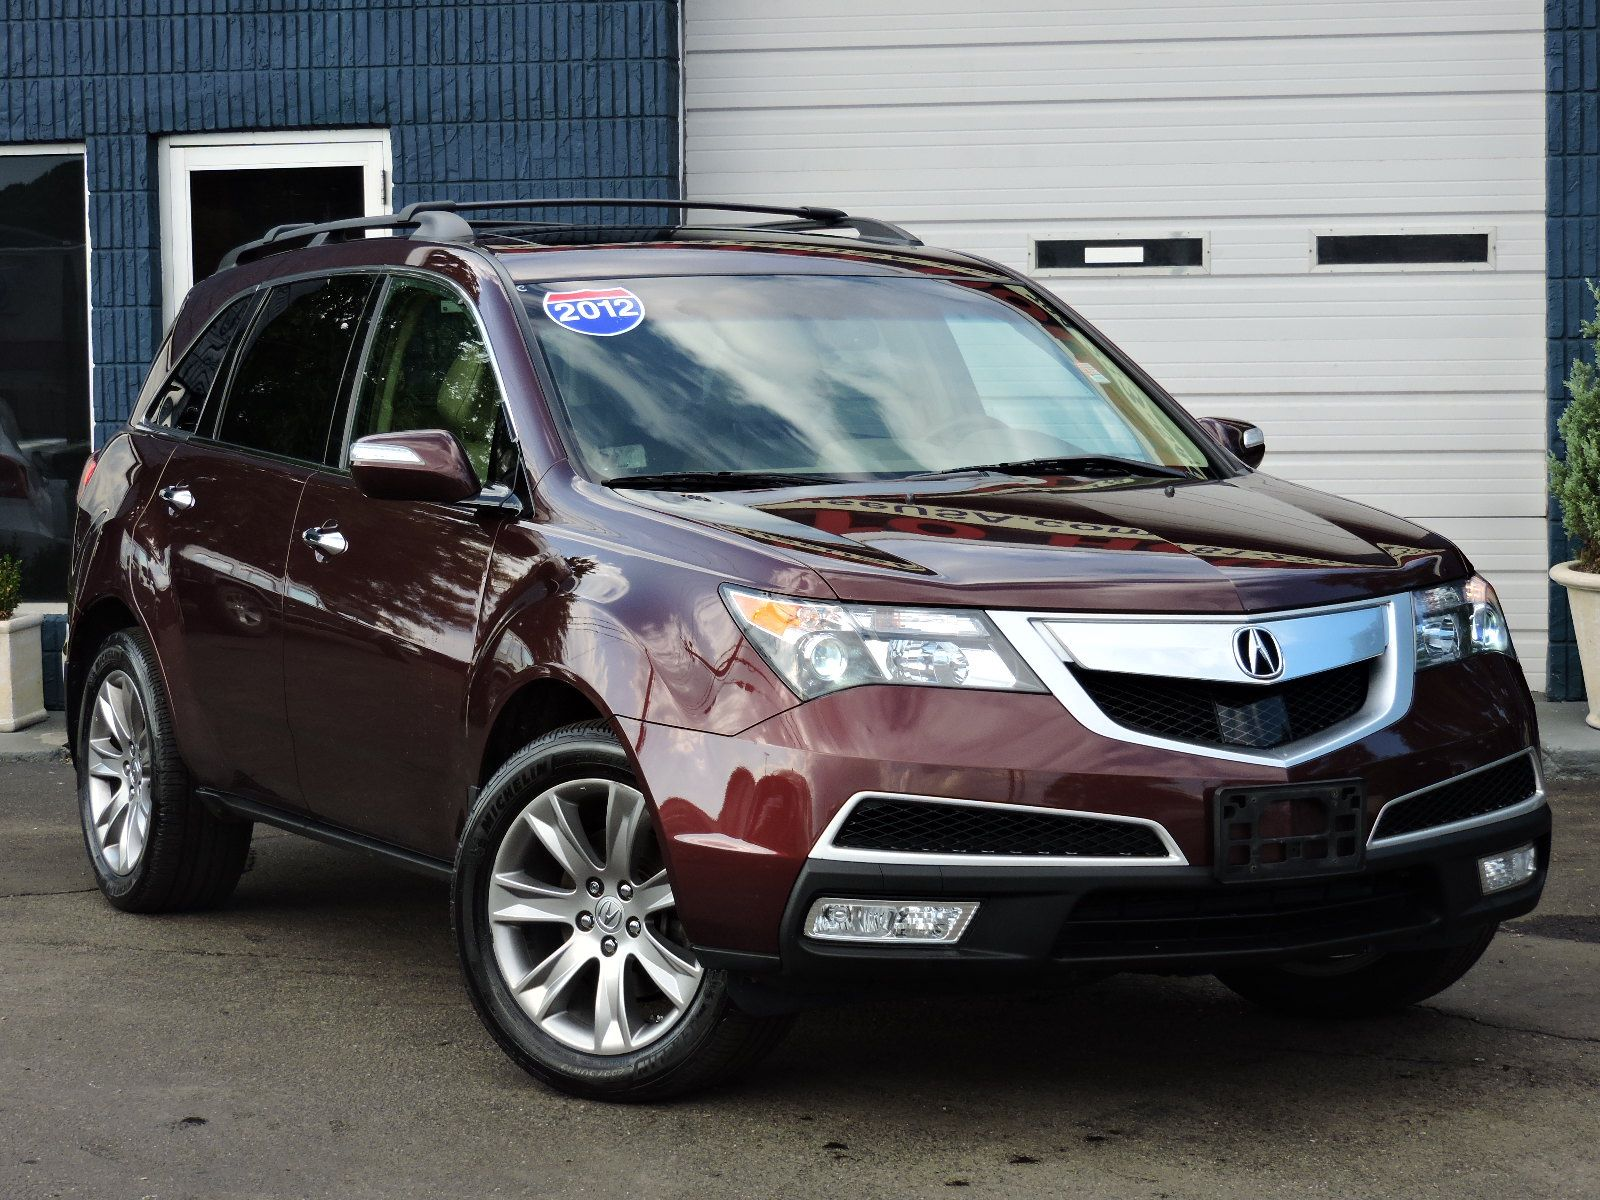 used 2012 acura mdx advanceentertainment pkg at auto house usa saugus. Black Bedroom Furniture Sets. Home Design Ideas